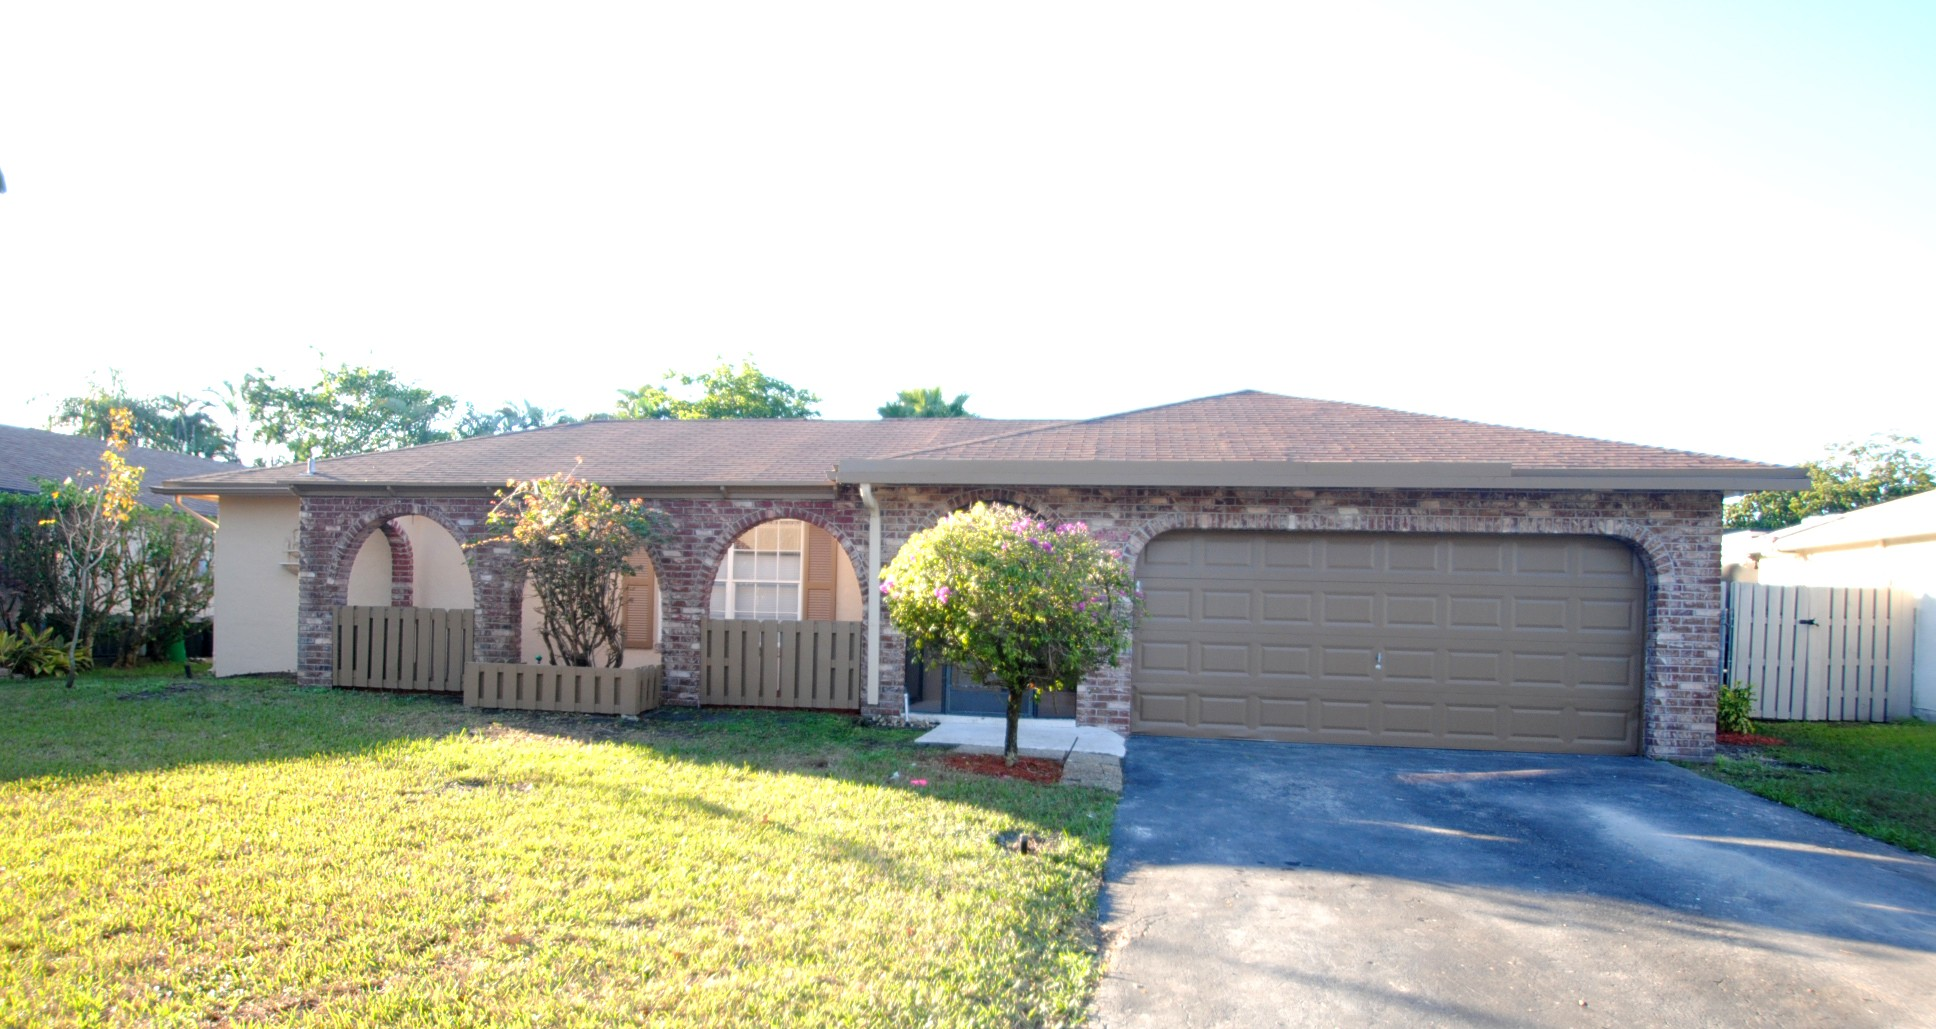 10984 Nw 21st St Coral Springs Fl 33071 4 Bedroom House